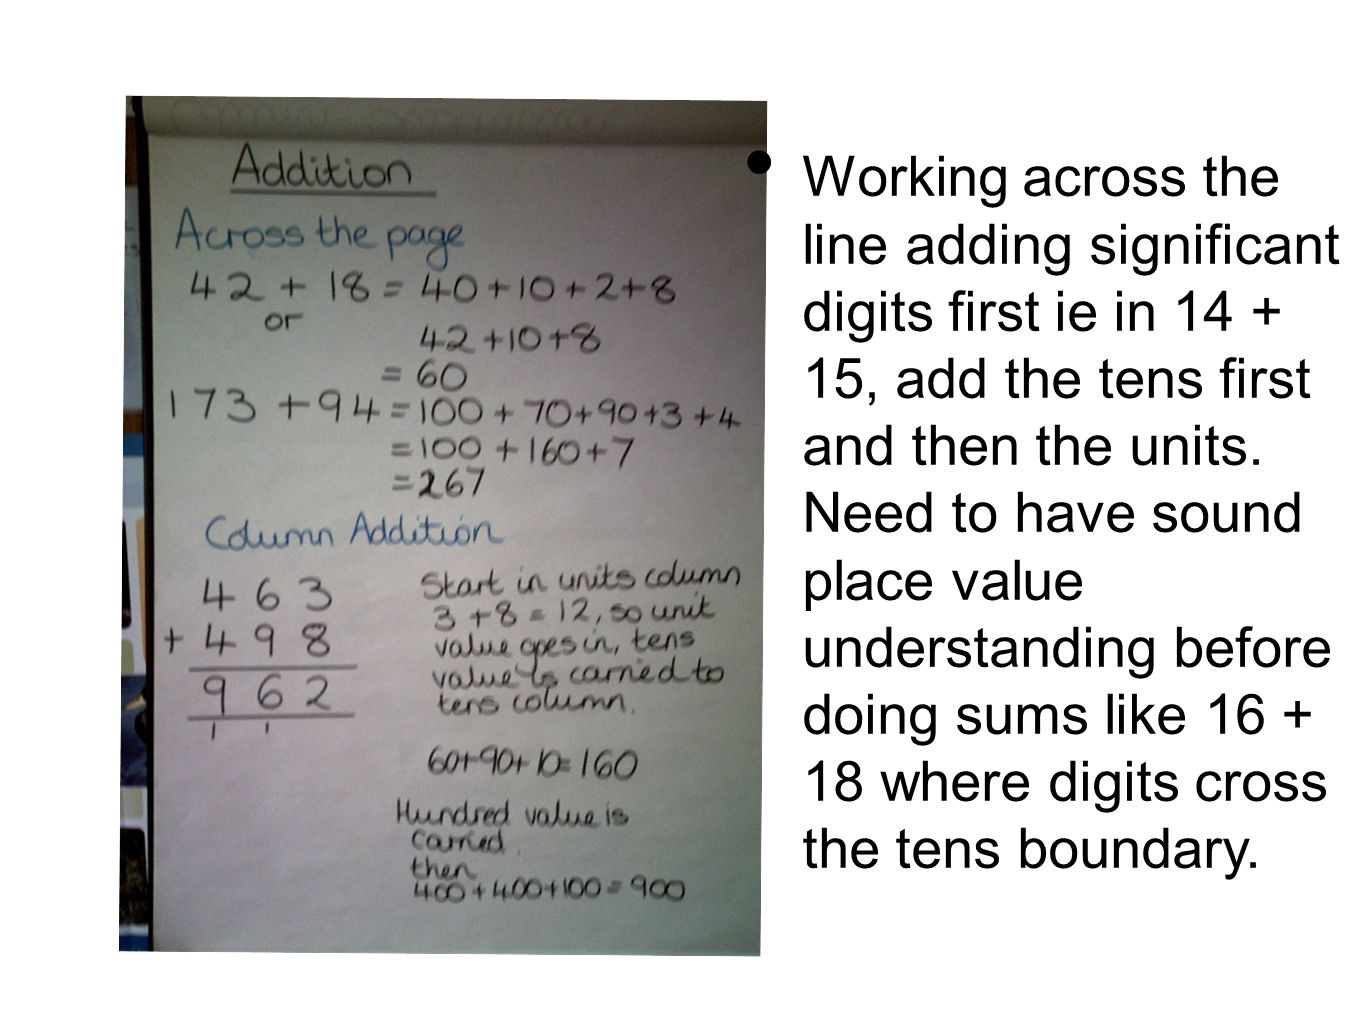 Working across the line adding significant digits first ie in 14 + 15, add the tens first and then the units.